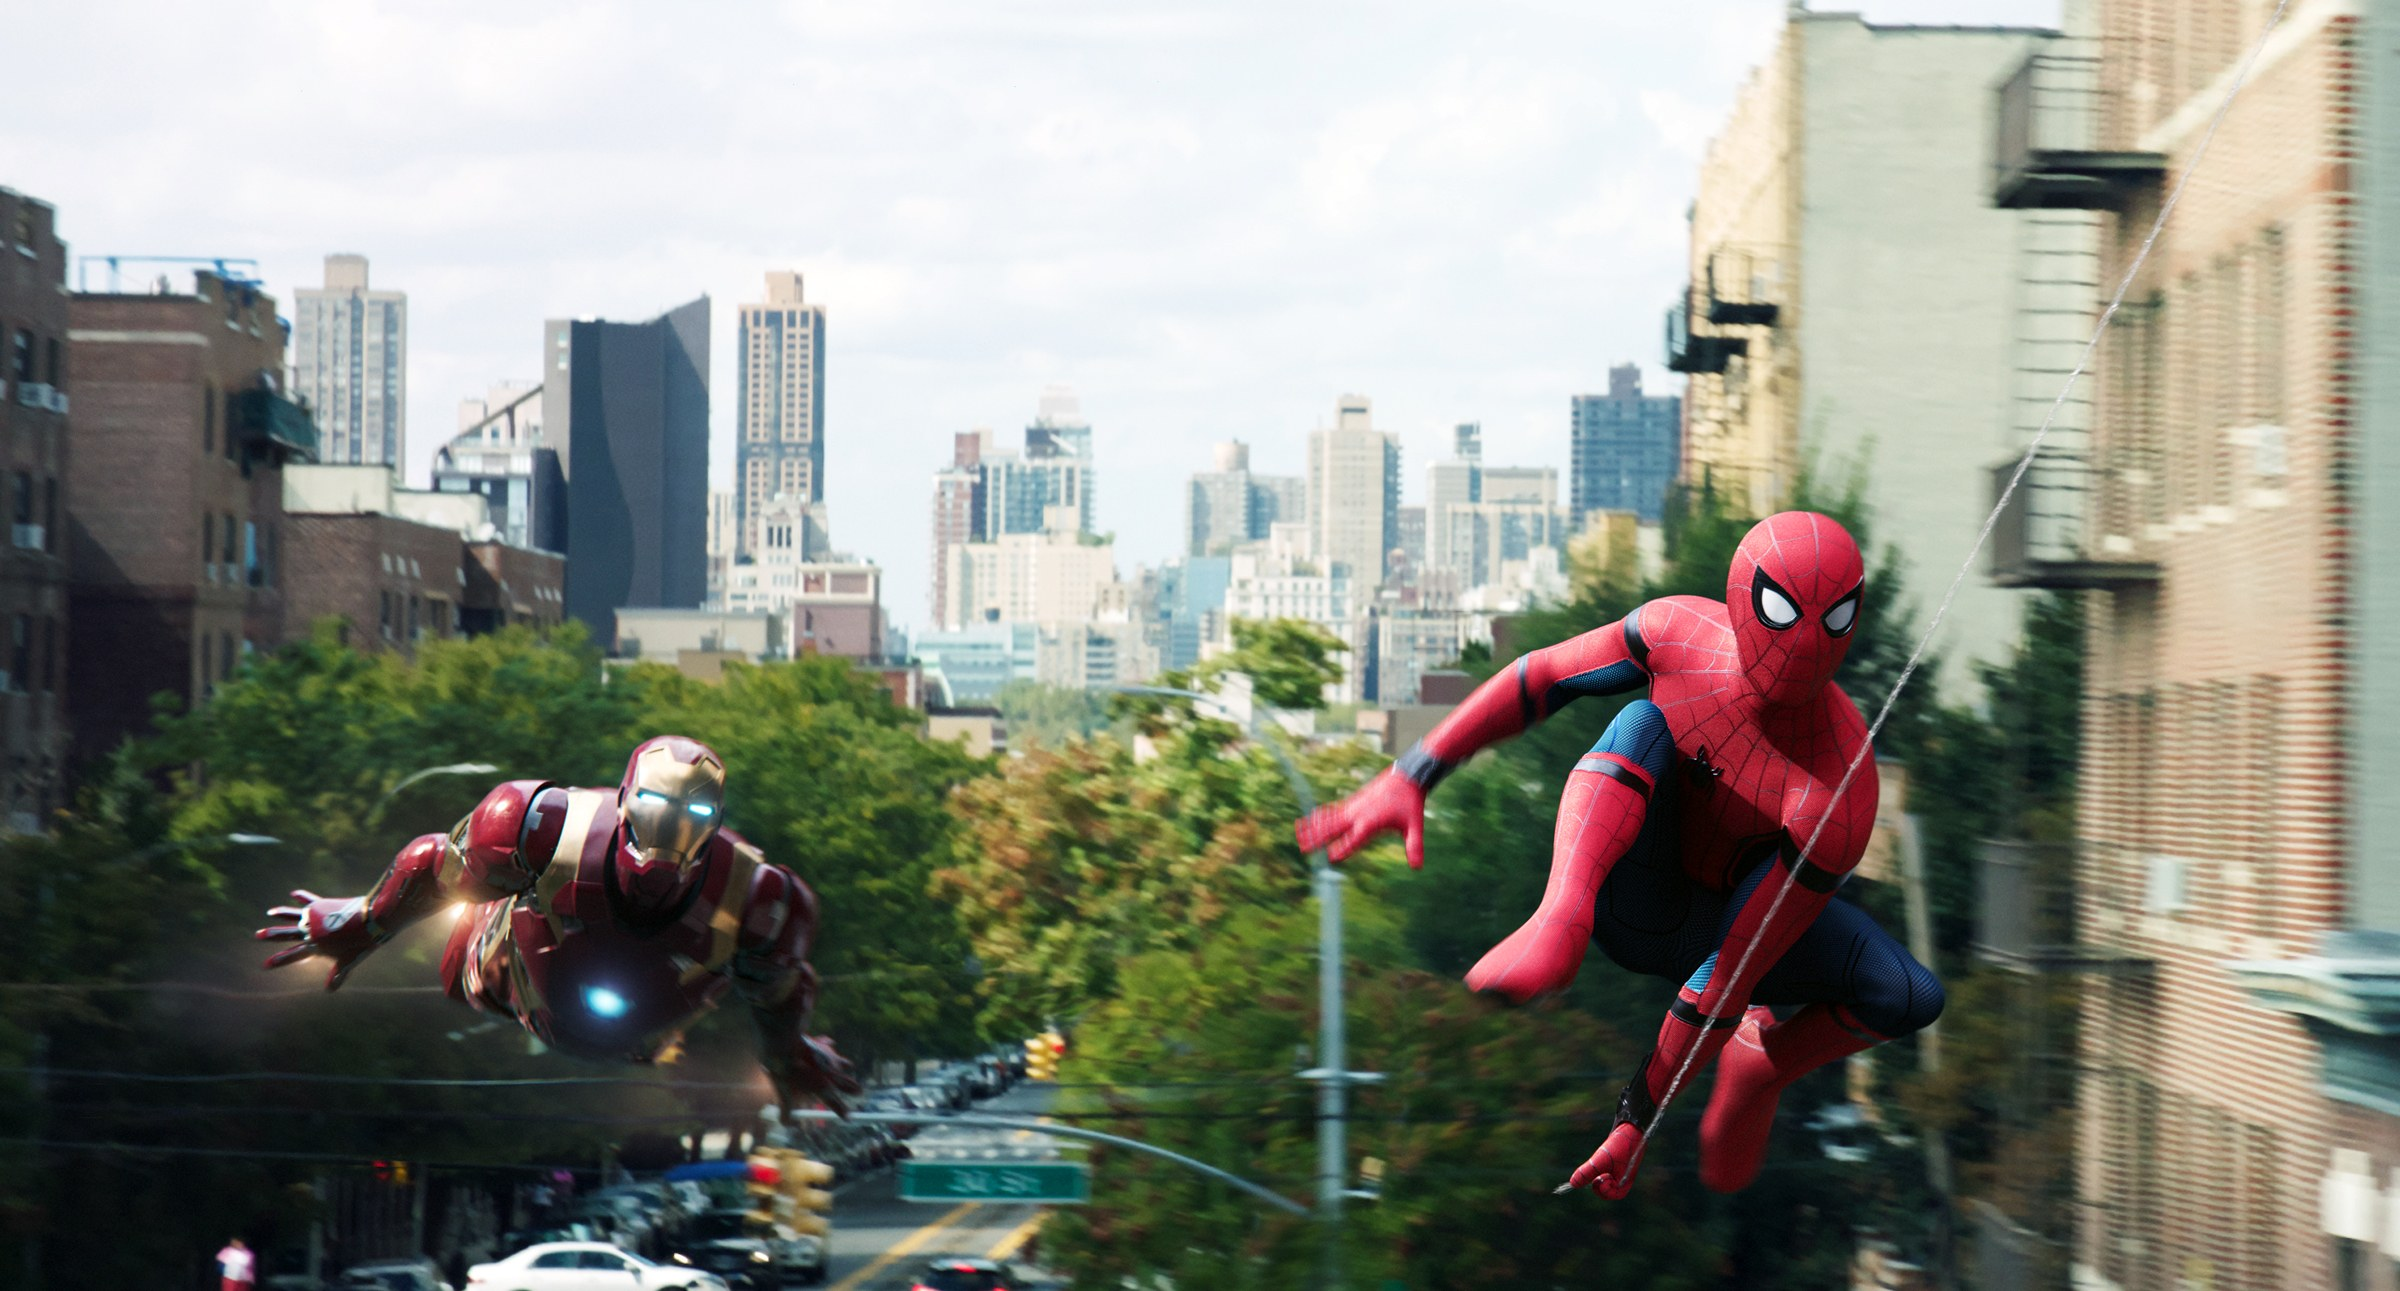 Report: Spider-Man reportedly out of MCU after Disney, Sony fail to reach deal